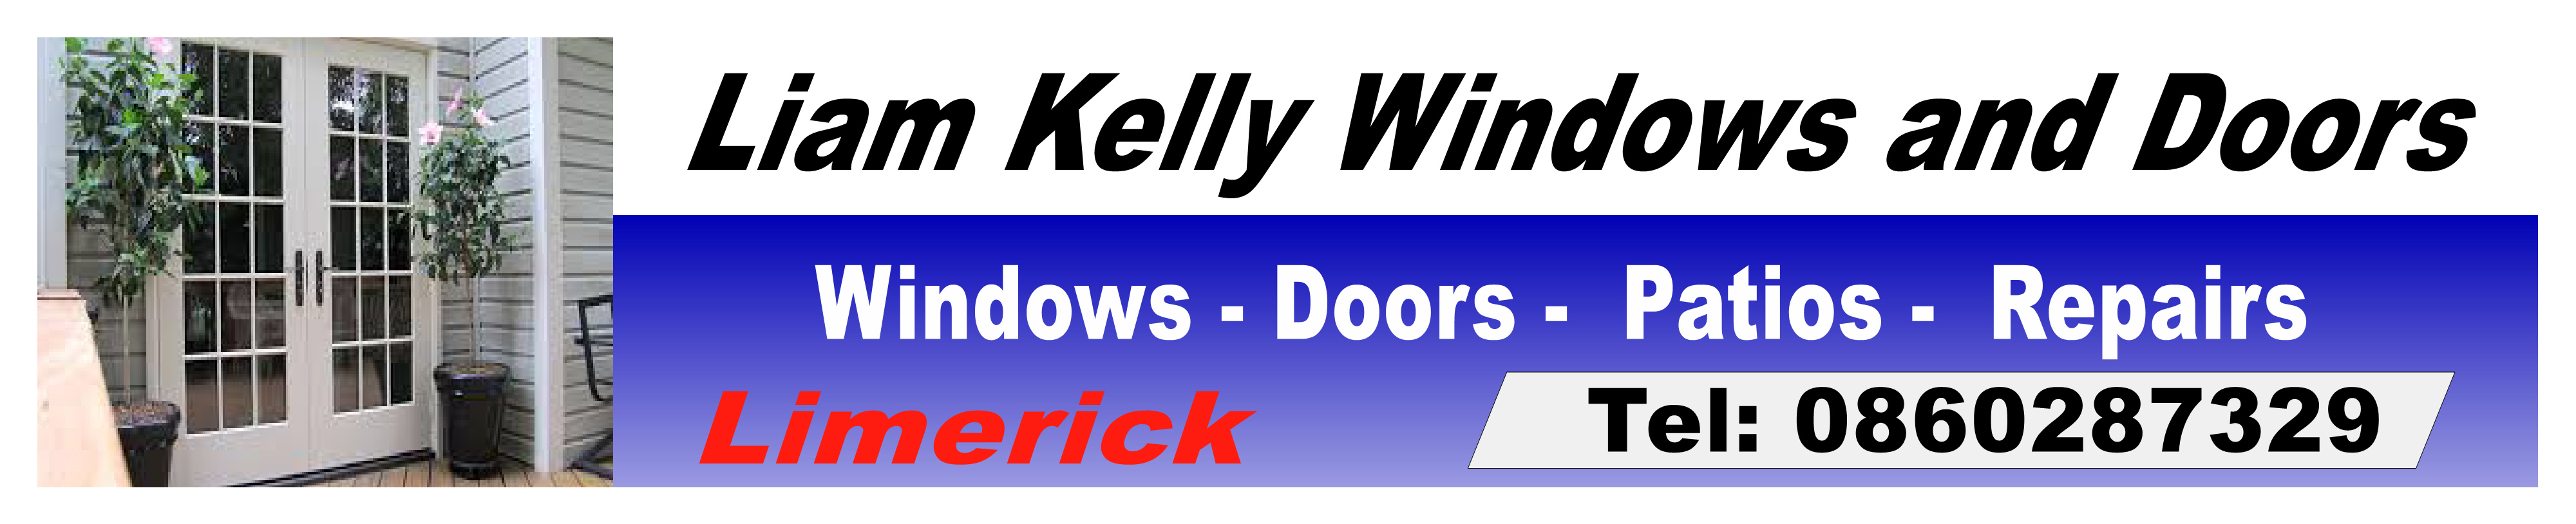 Liam Kelly Windows And Doors In Limerick Co For Business